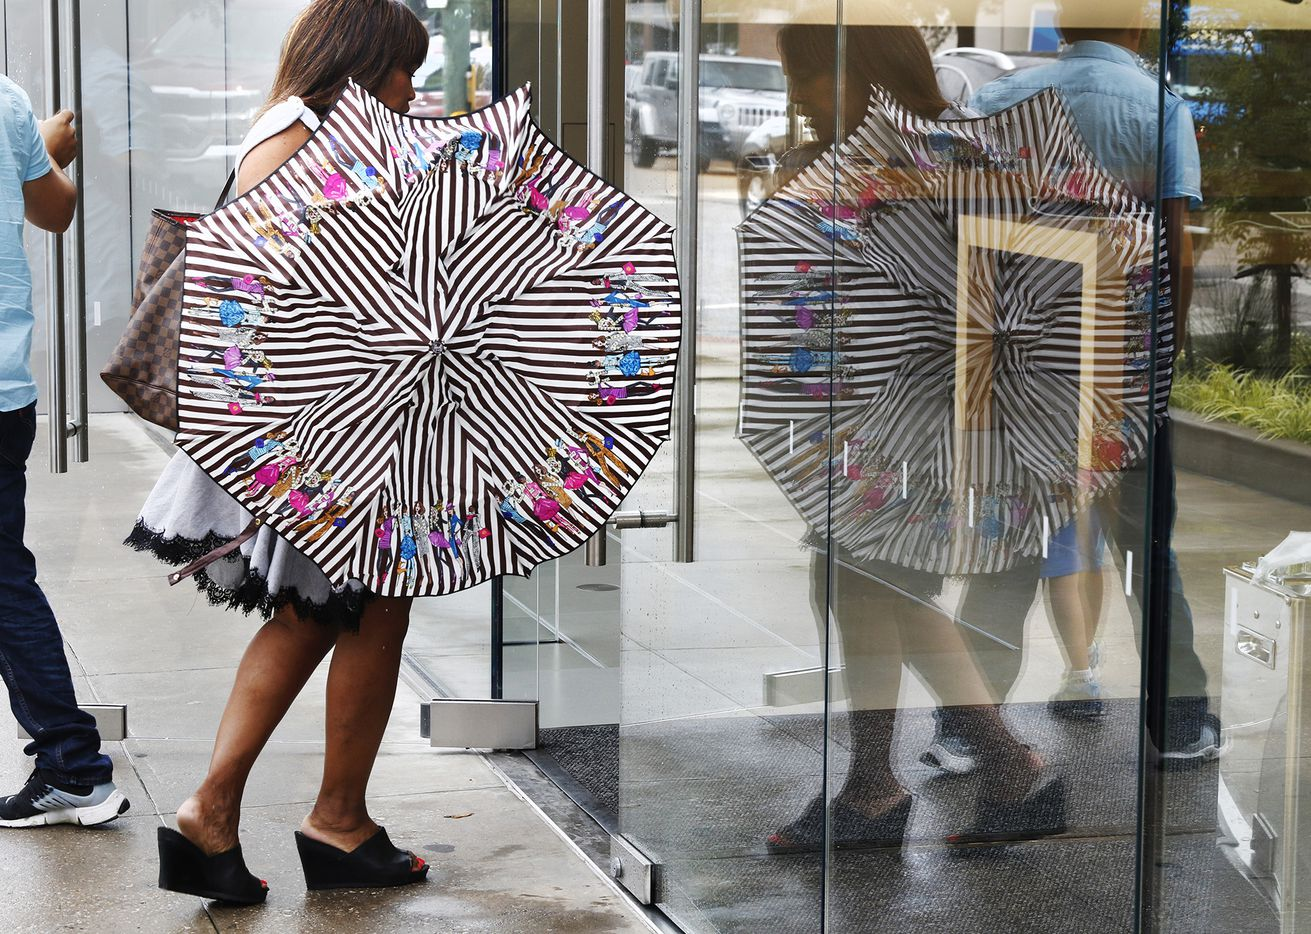 Veronica Lewis of Dallas finds shelter from a quick downpour at the Apple store on Knox St. in Dallas on Friday, June 2, 2017.